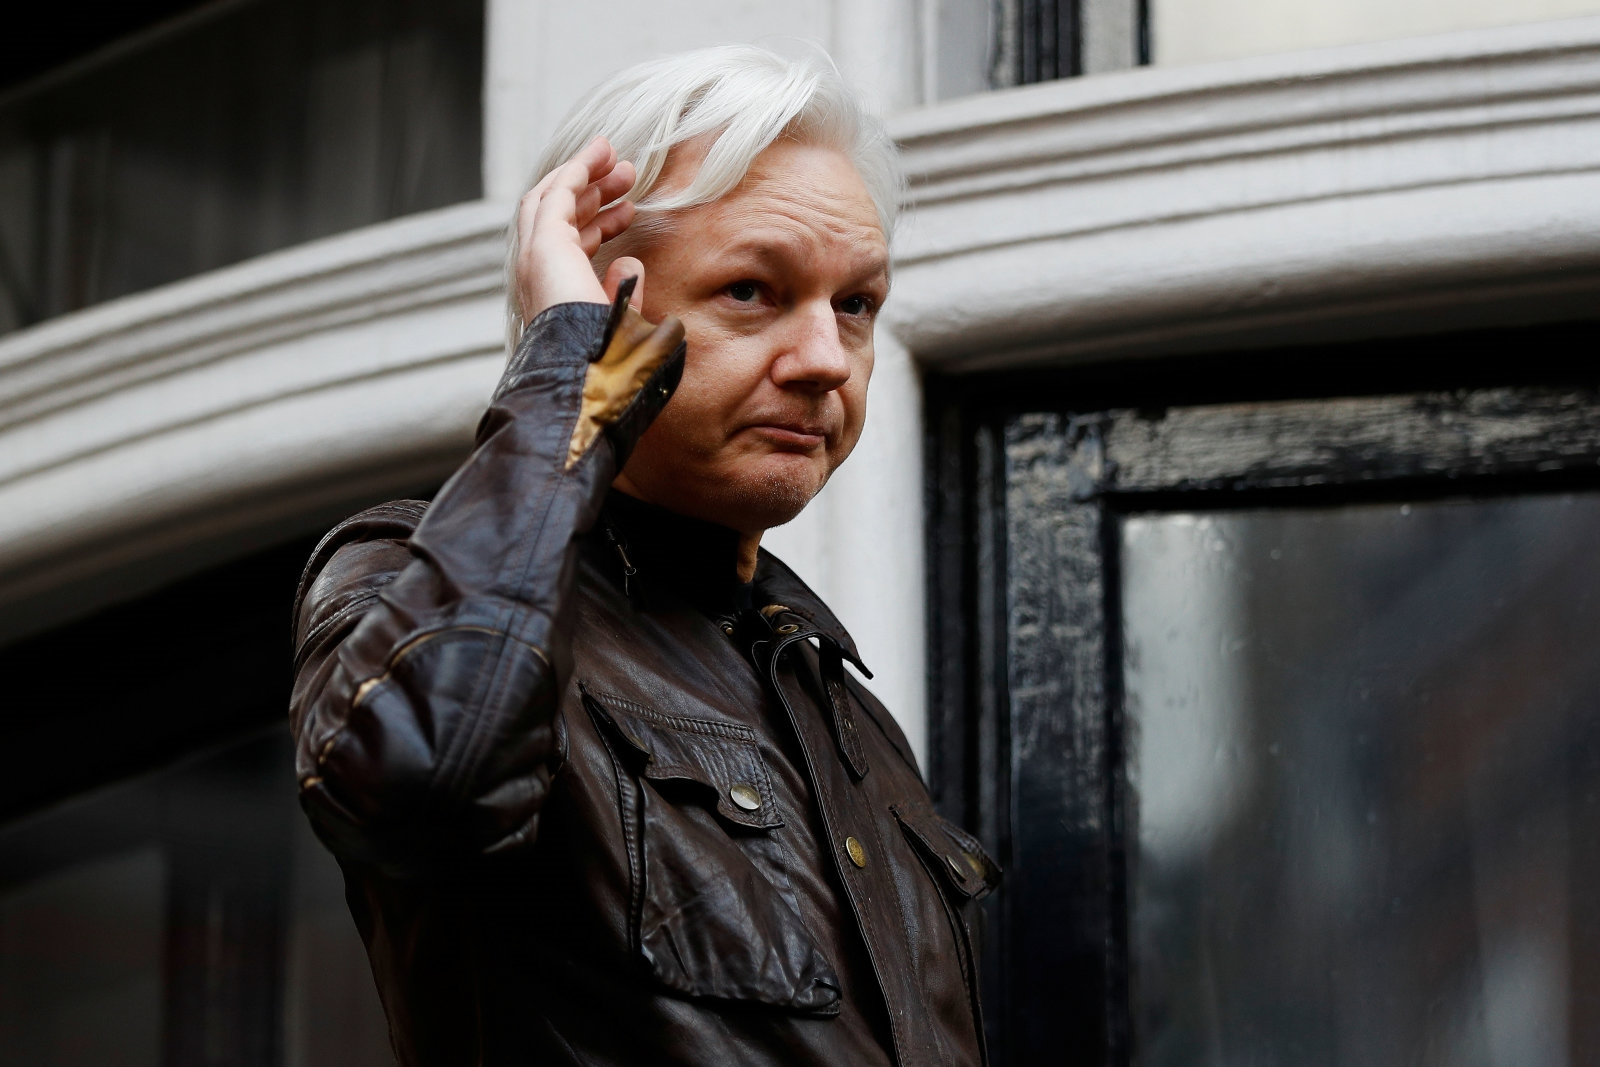 Filing reveals sealed charges against WikiLeaks founder Julian Assange | DeviceDaily.com